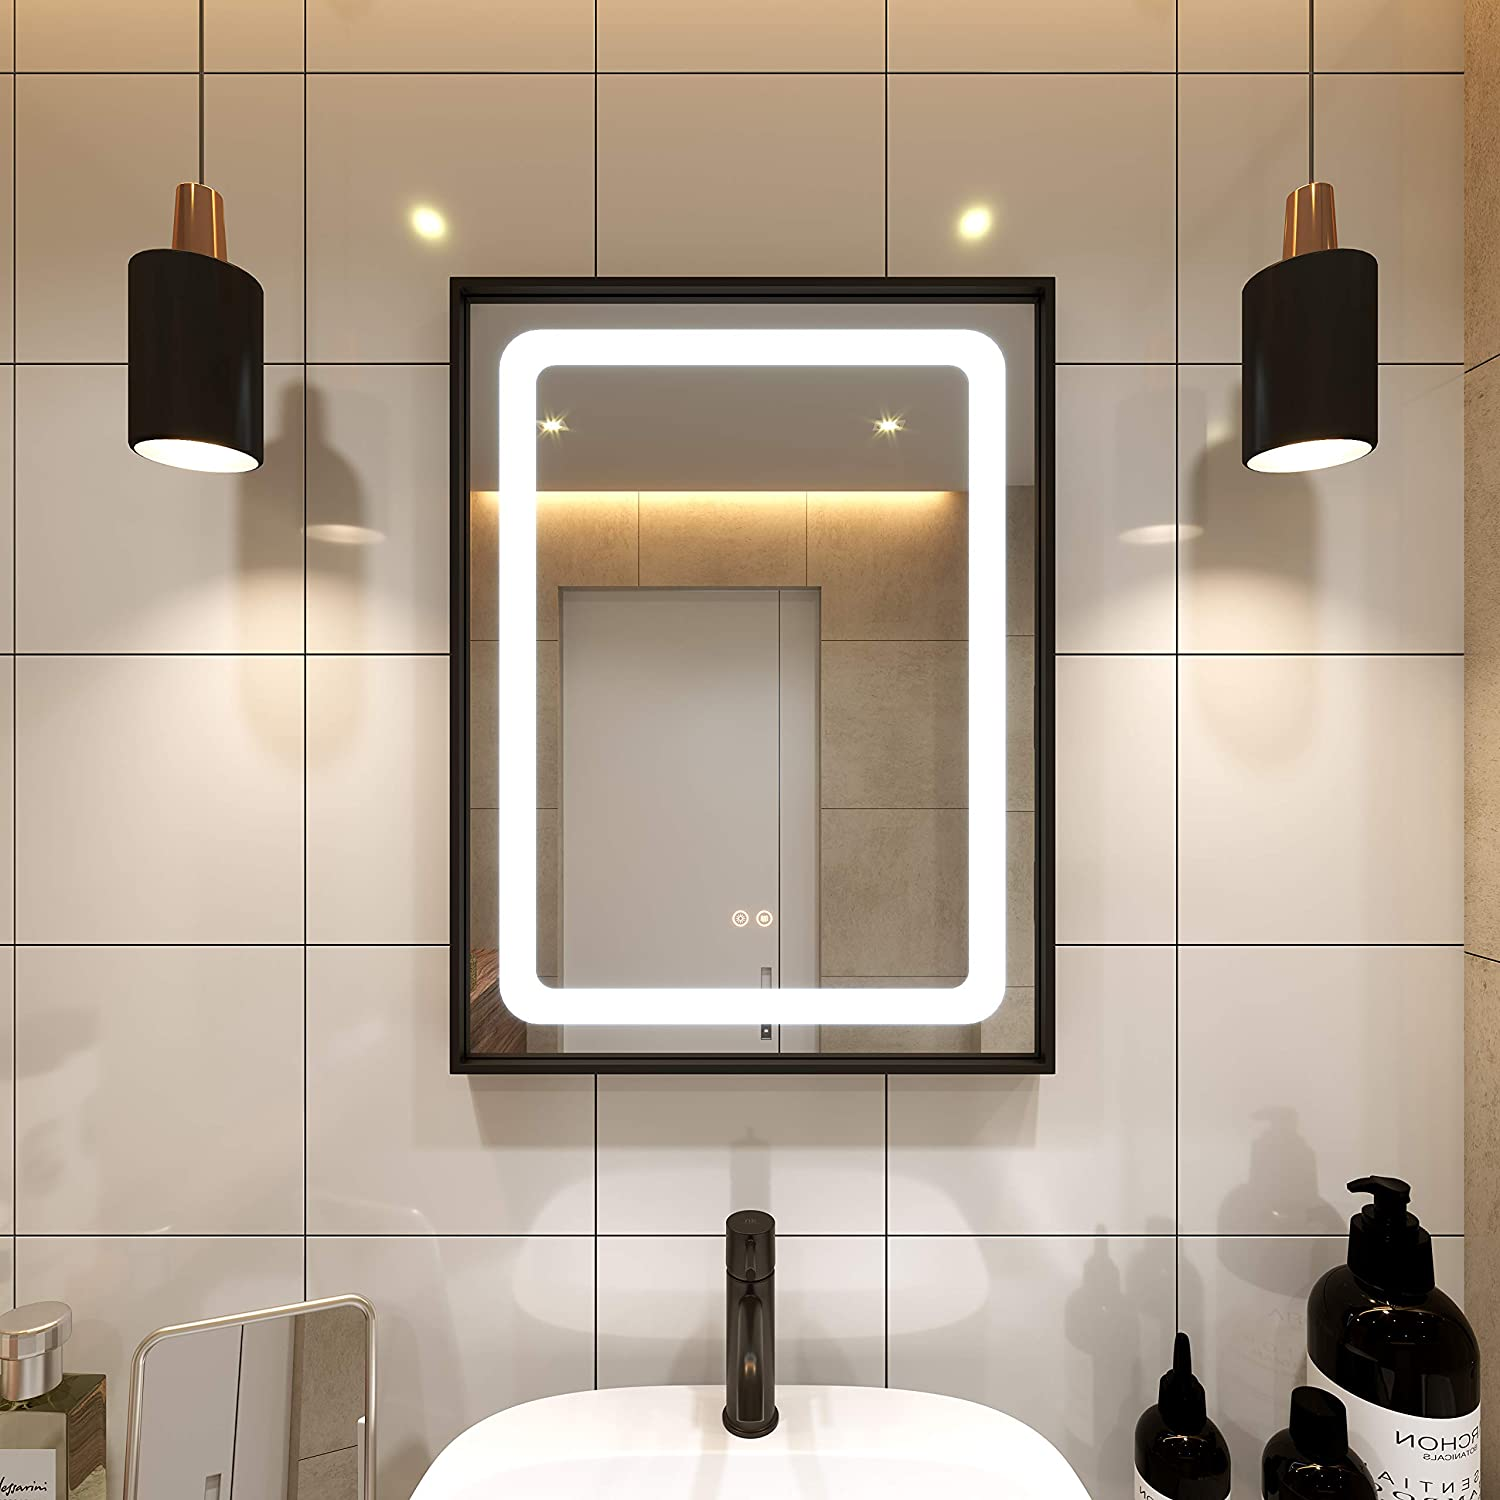 Petus PetusHouse 20 X 28 Inch LED Lighted Bathroom Mirrors, Wall Mounted Black Frame White Light Dimmable Defogger Memory Button Waterproof CRI>90 5MM Copper Free Salon Mirrors